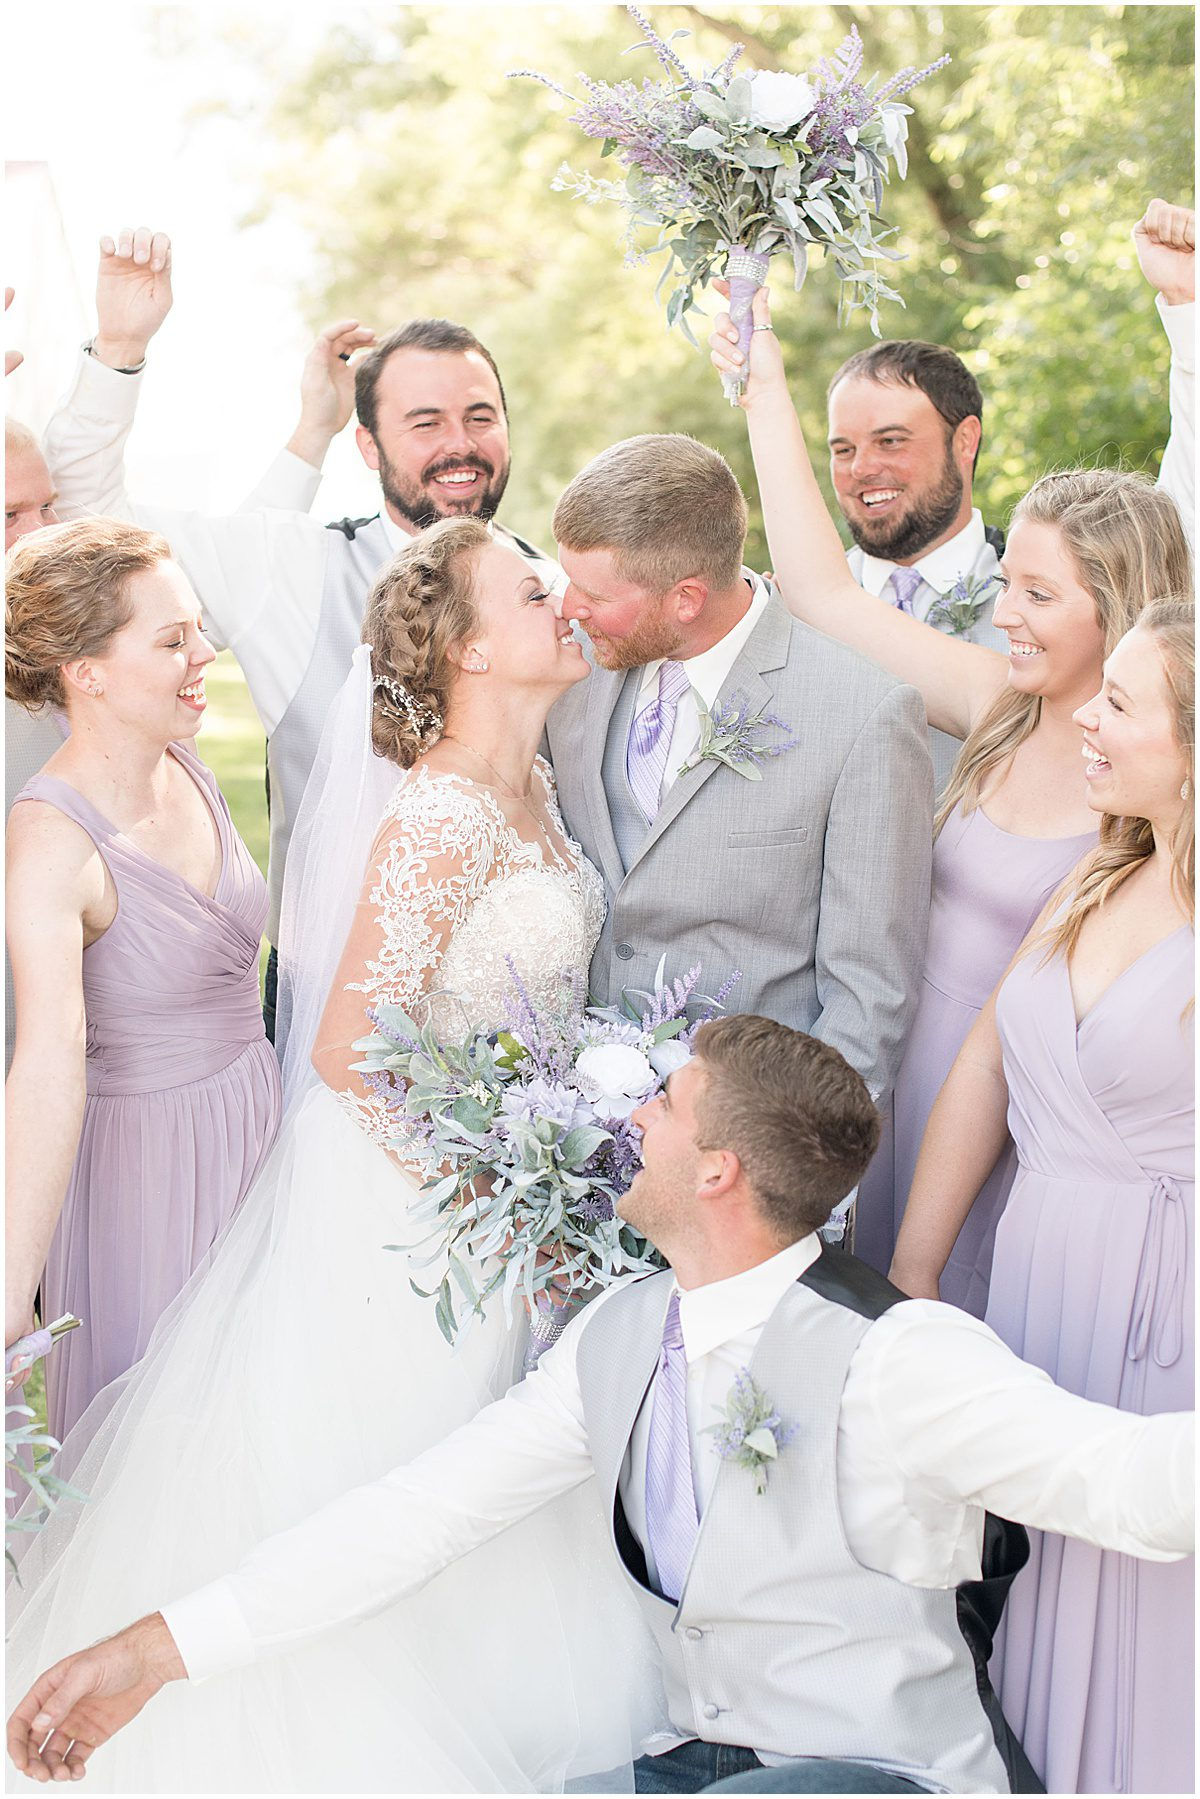 Bridal party excited for wedding at the Wagner Angus Barn in Wolcott, Indiana by Victoria Rayburn Photography